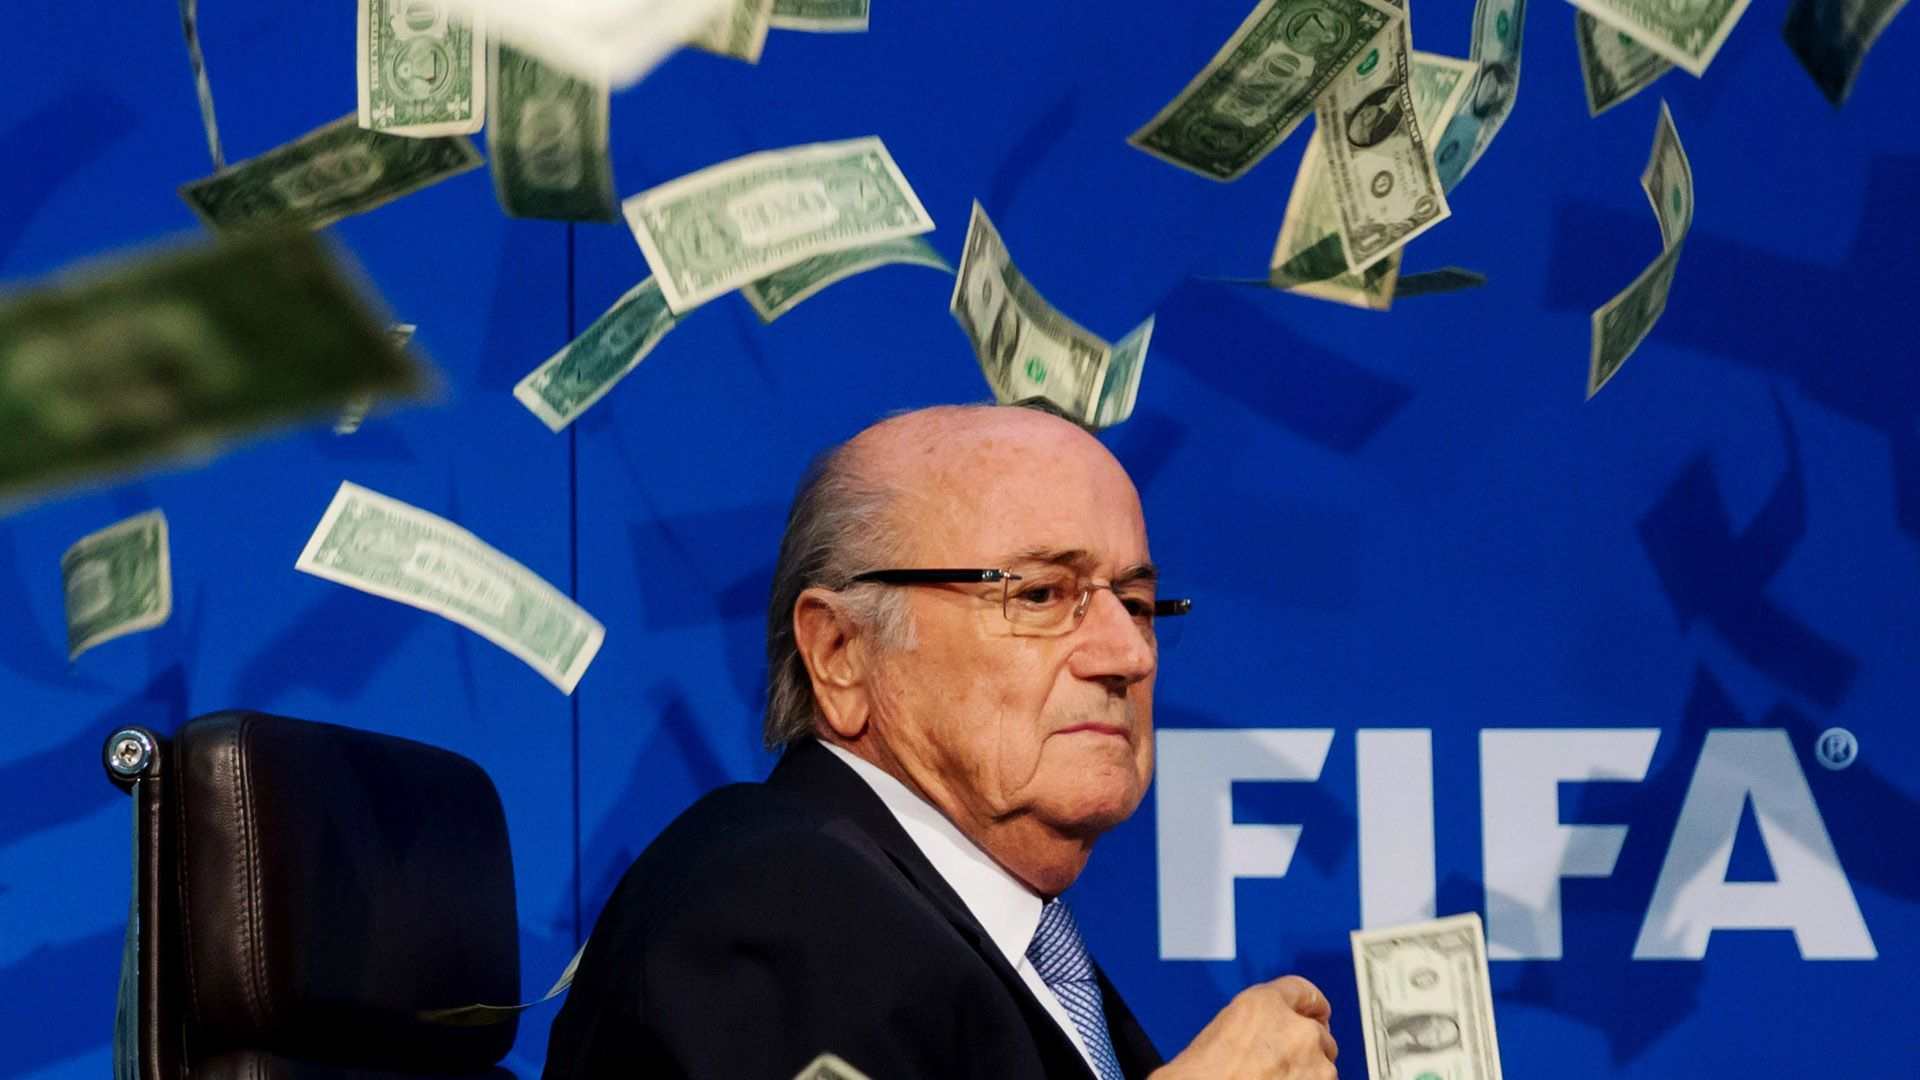 15 Shocking Facts FIFA Doesn't Want You To Know